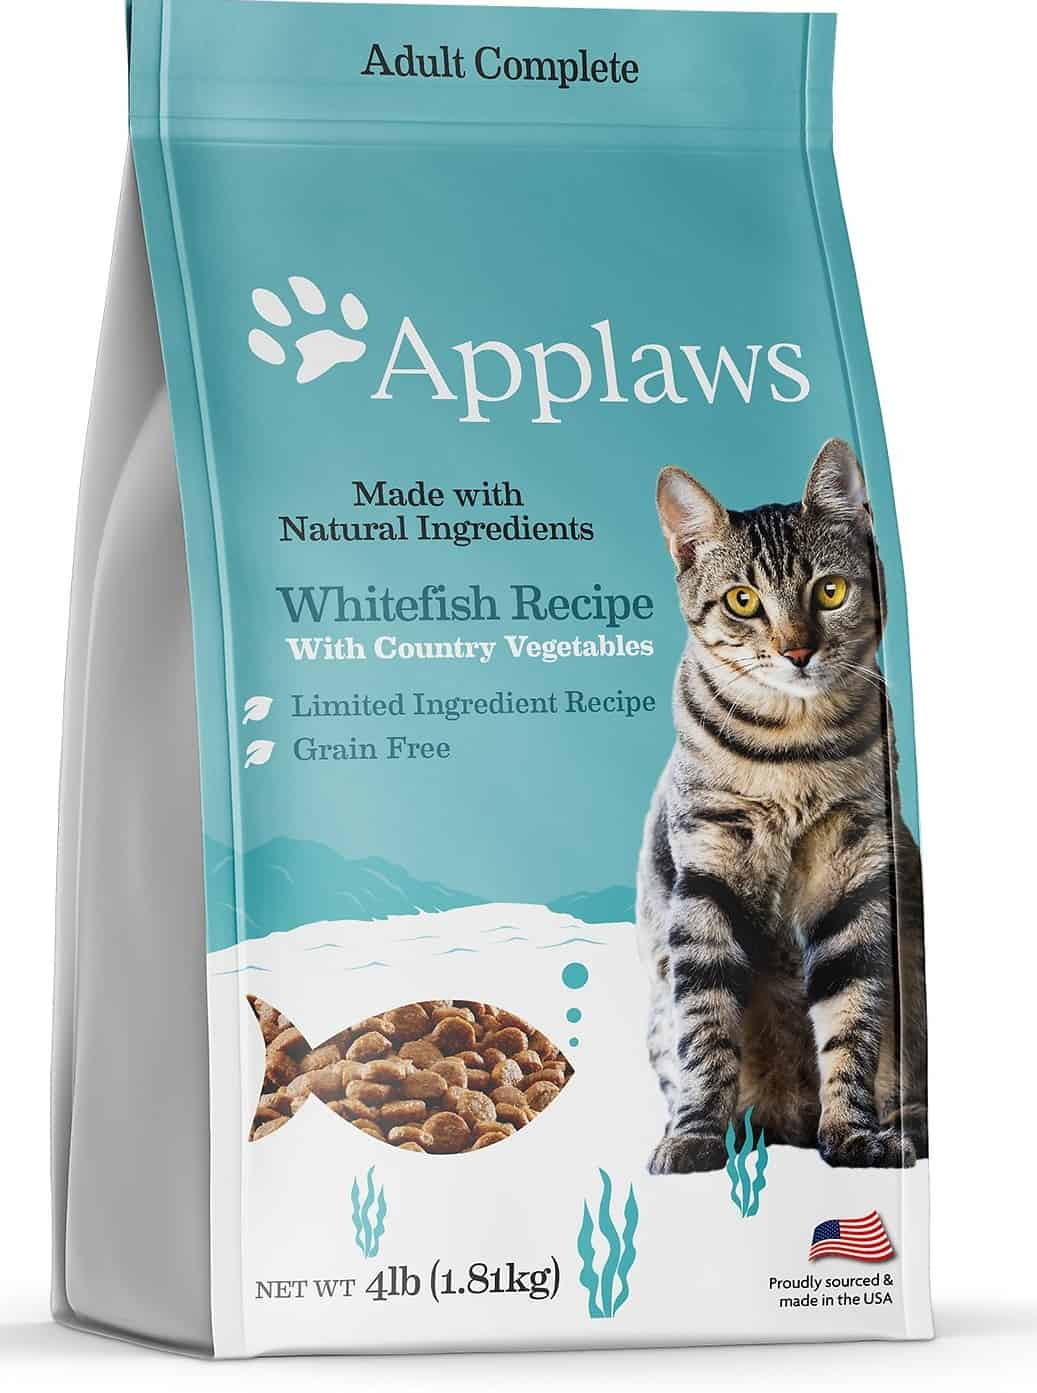 [year] Applaws Cat Food Reviews: Naturally Nutritious Cat Food 3